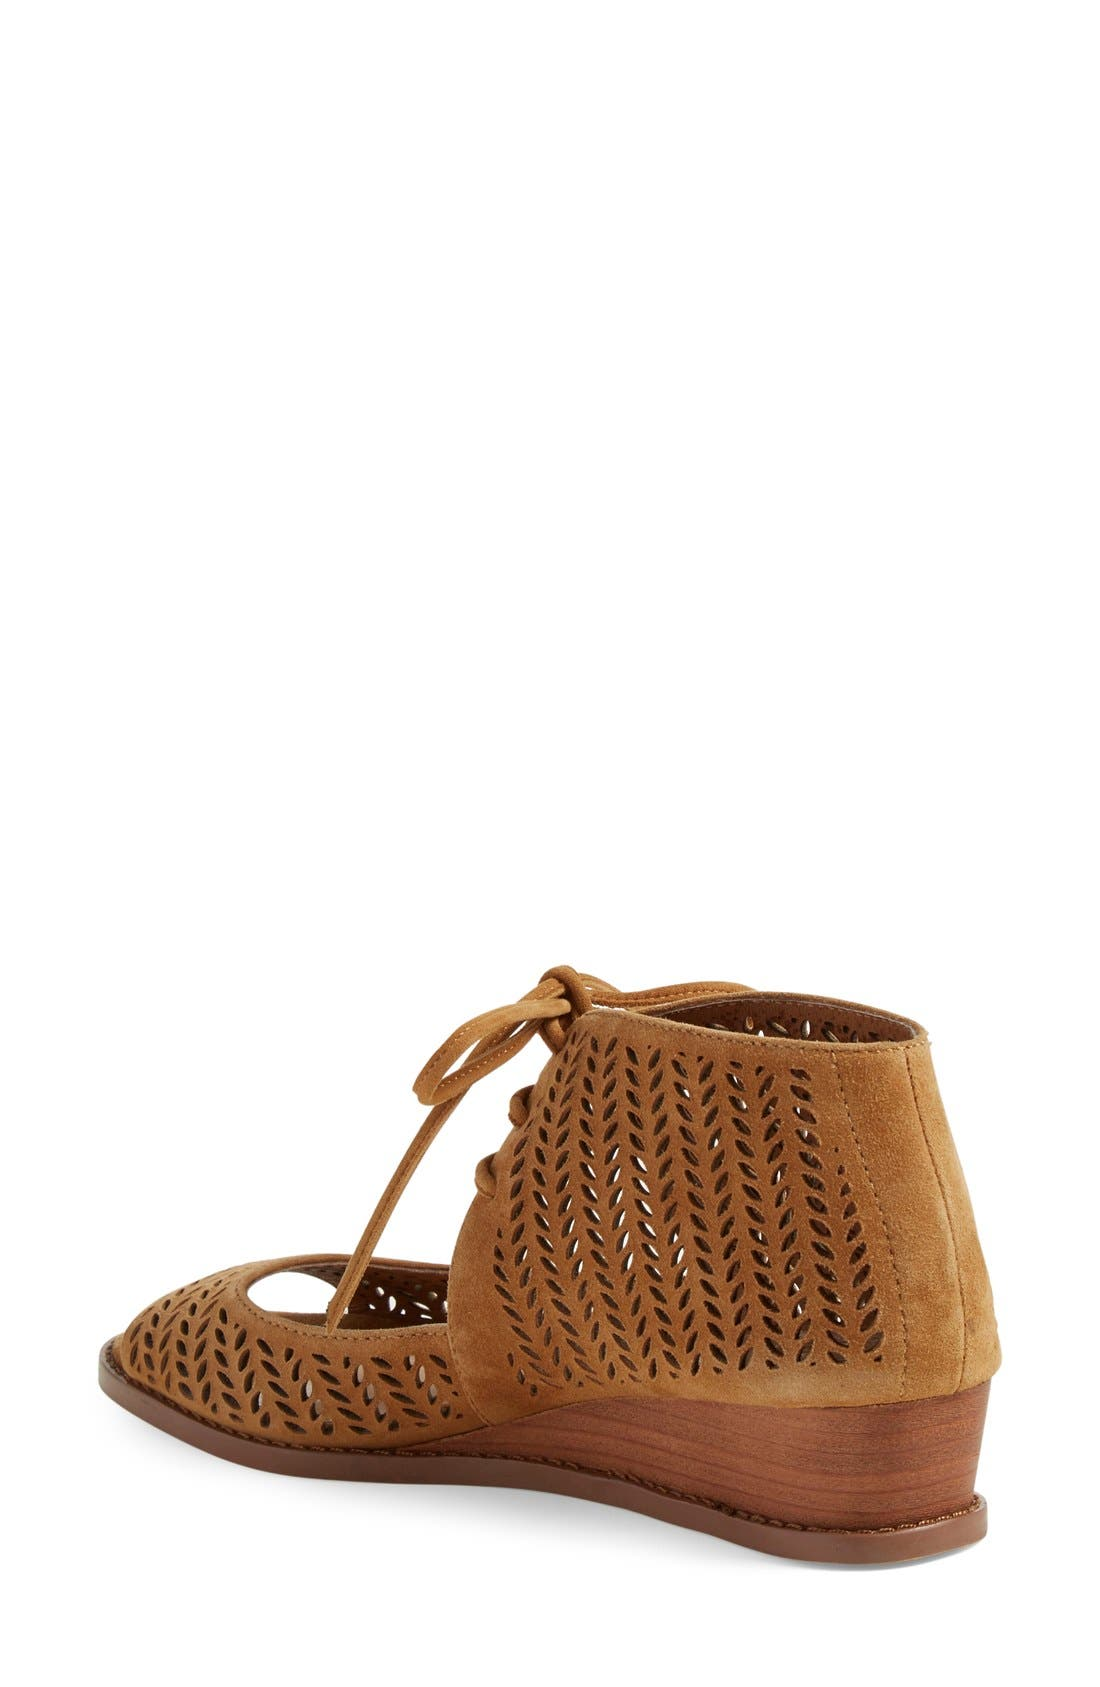 Alternate Image 2  - Vince Camuto 'Remme' Cutout Lace-Up Wedge Sandal (Women) (Nordstrom Exclusive)